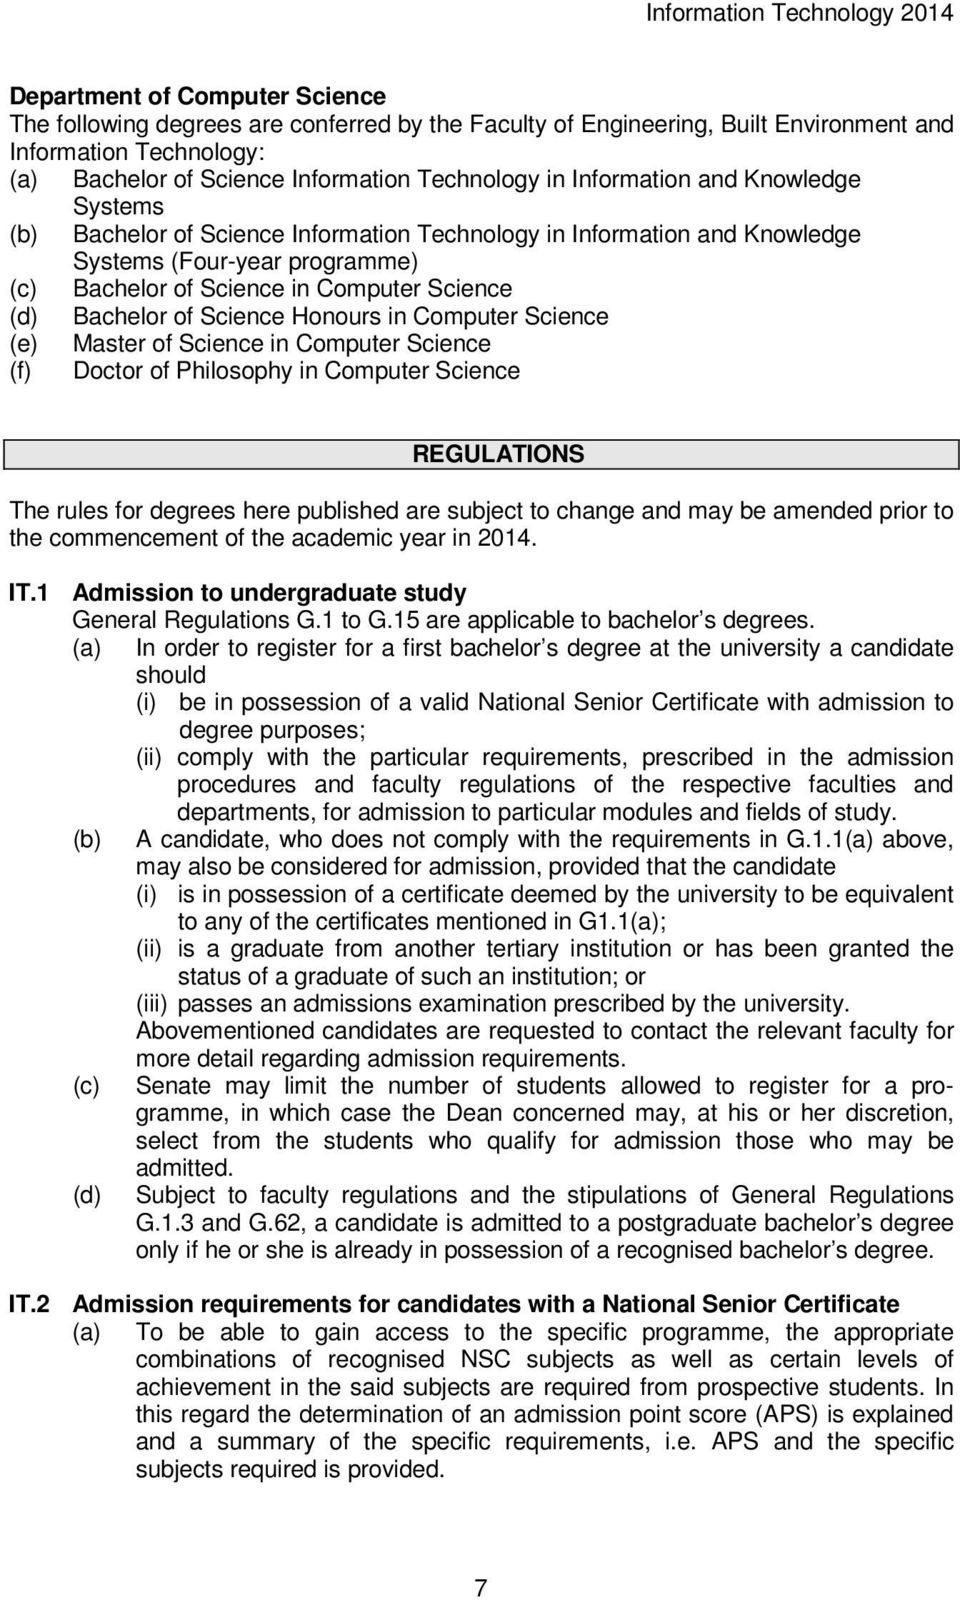 Science Honours in Computer Science (e) Master of Science in Computer Science (f) Doctor of Philosophy in Computer Science REGULATIONS The rules for degrees here published are subject to change and